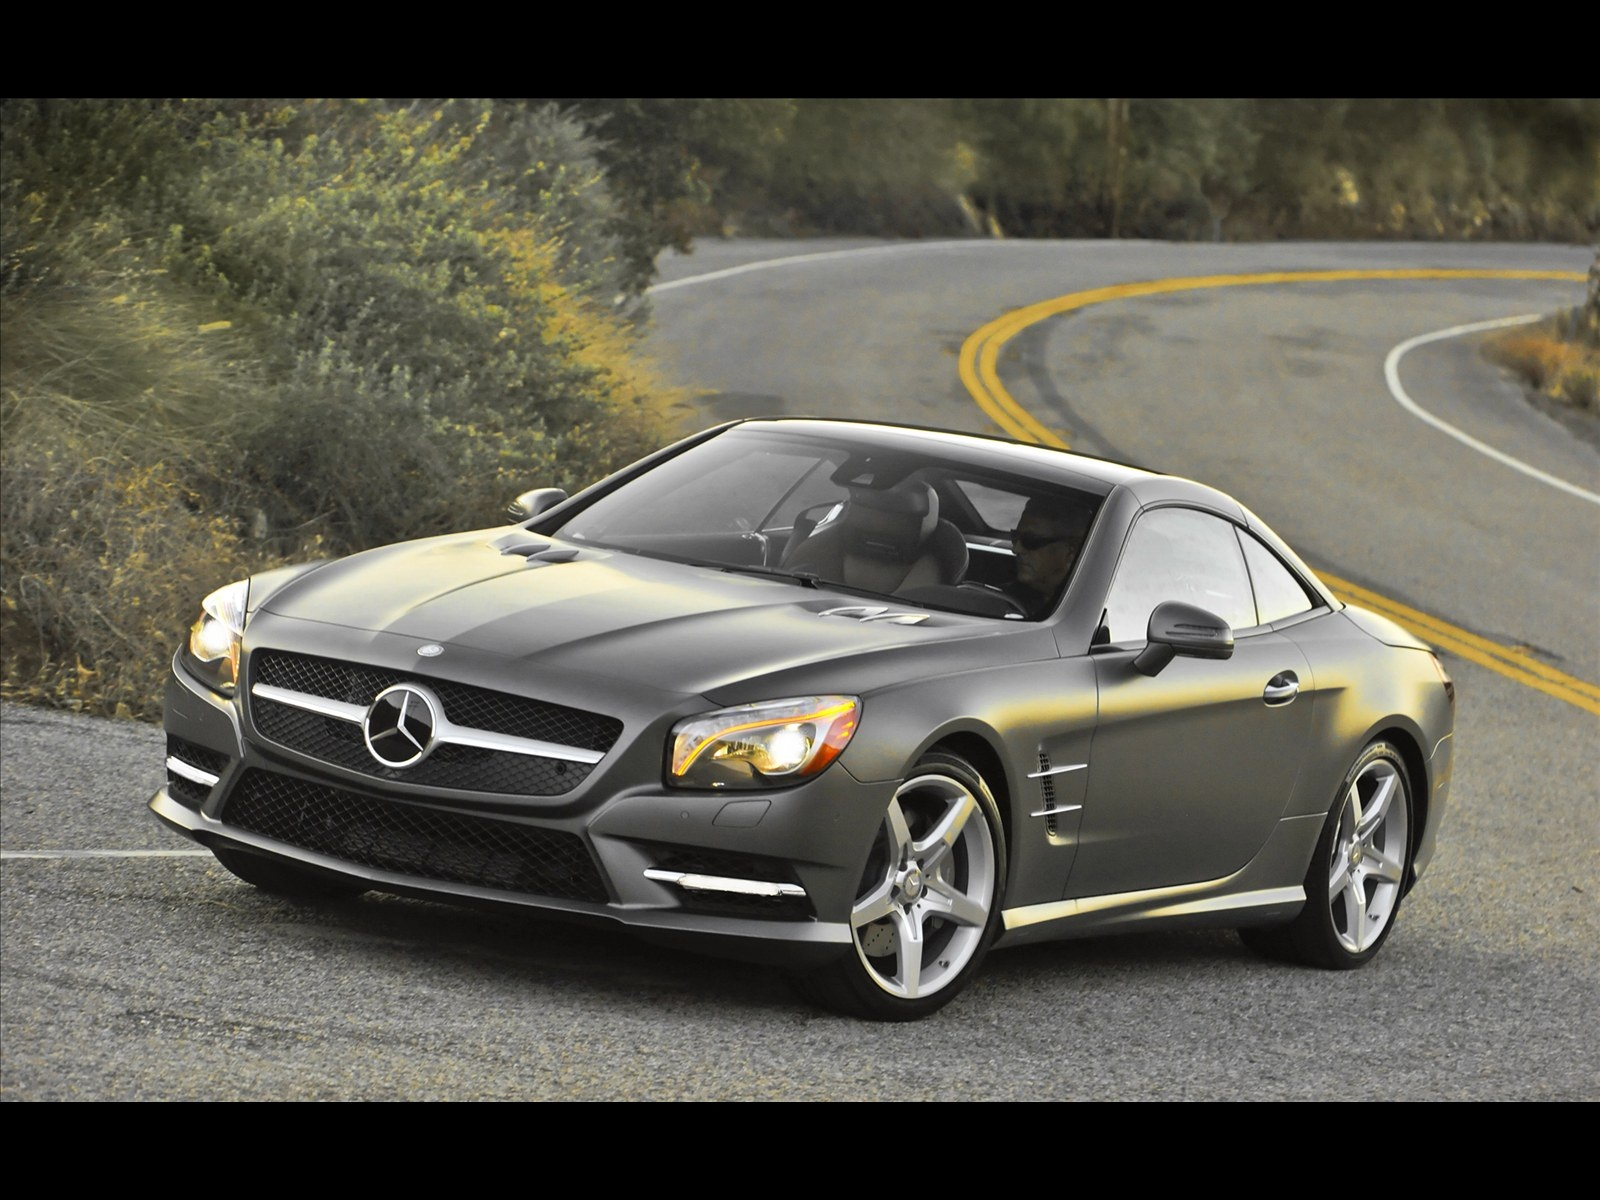 Cool car wallpapers mercedes benz cars 2013 for Mercedes benz cars images